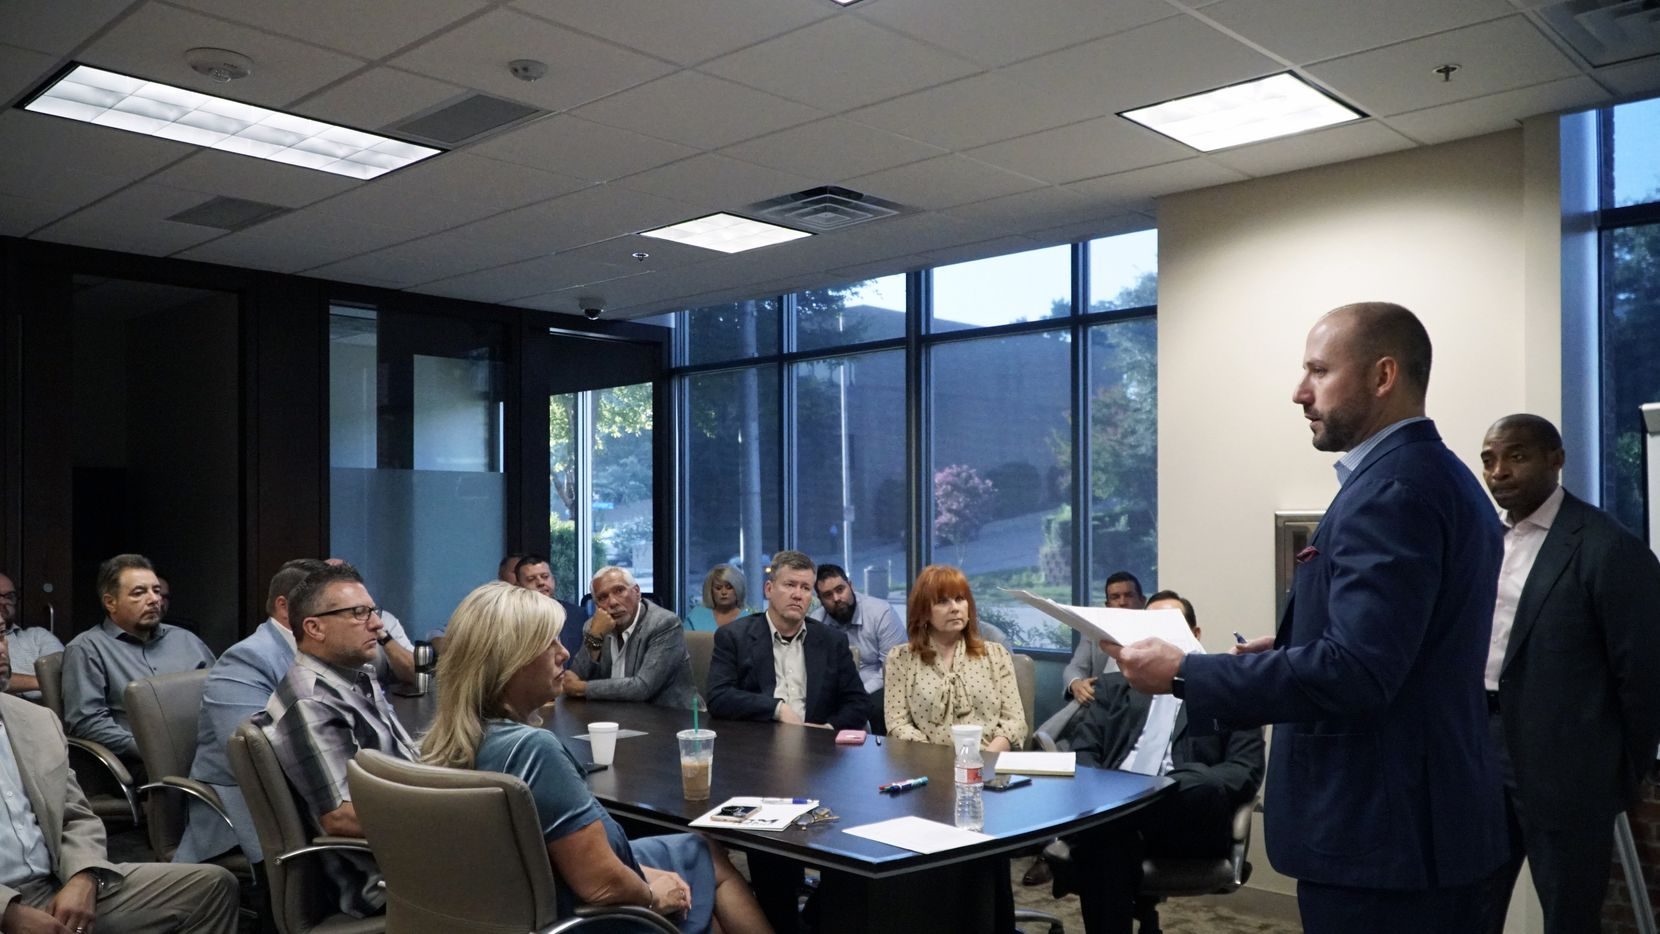 Chase Kennemer, president of D&M Leasing Fort Worth, gives direction during the morning sales meeting at D&M Leasing office in Fort Worth.